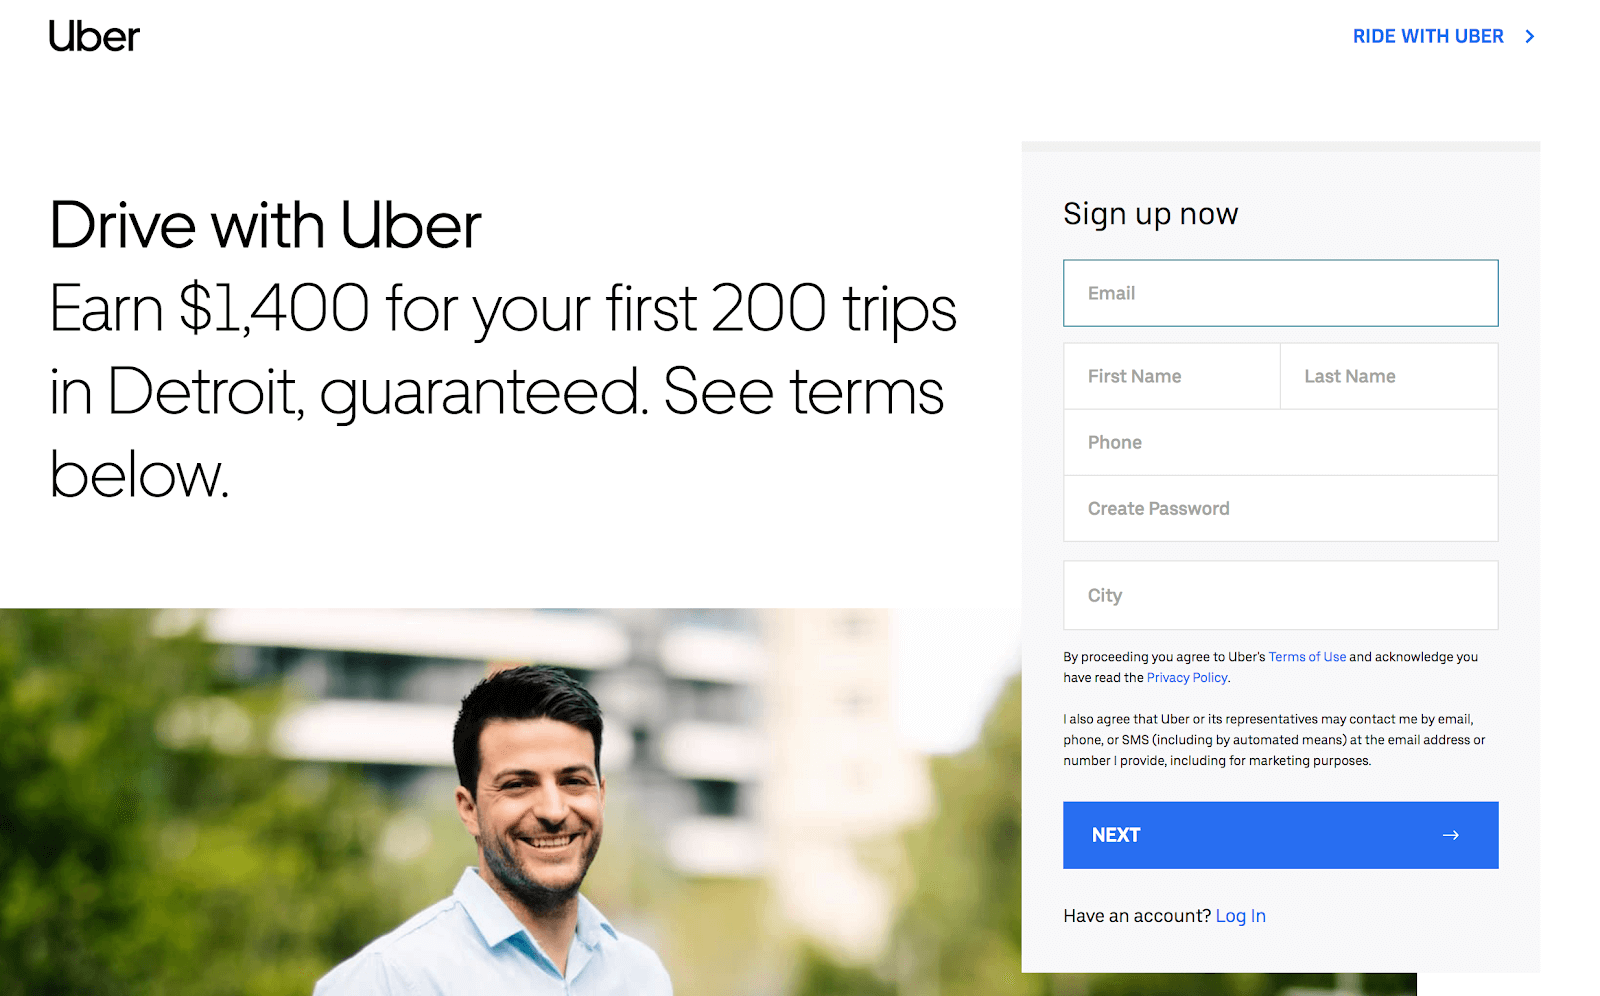 How to Become an Uber Driver: Step-by-Step Guide - Step 1